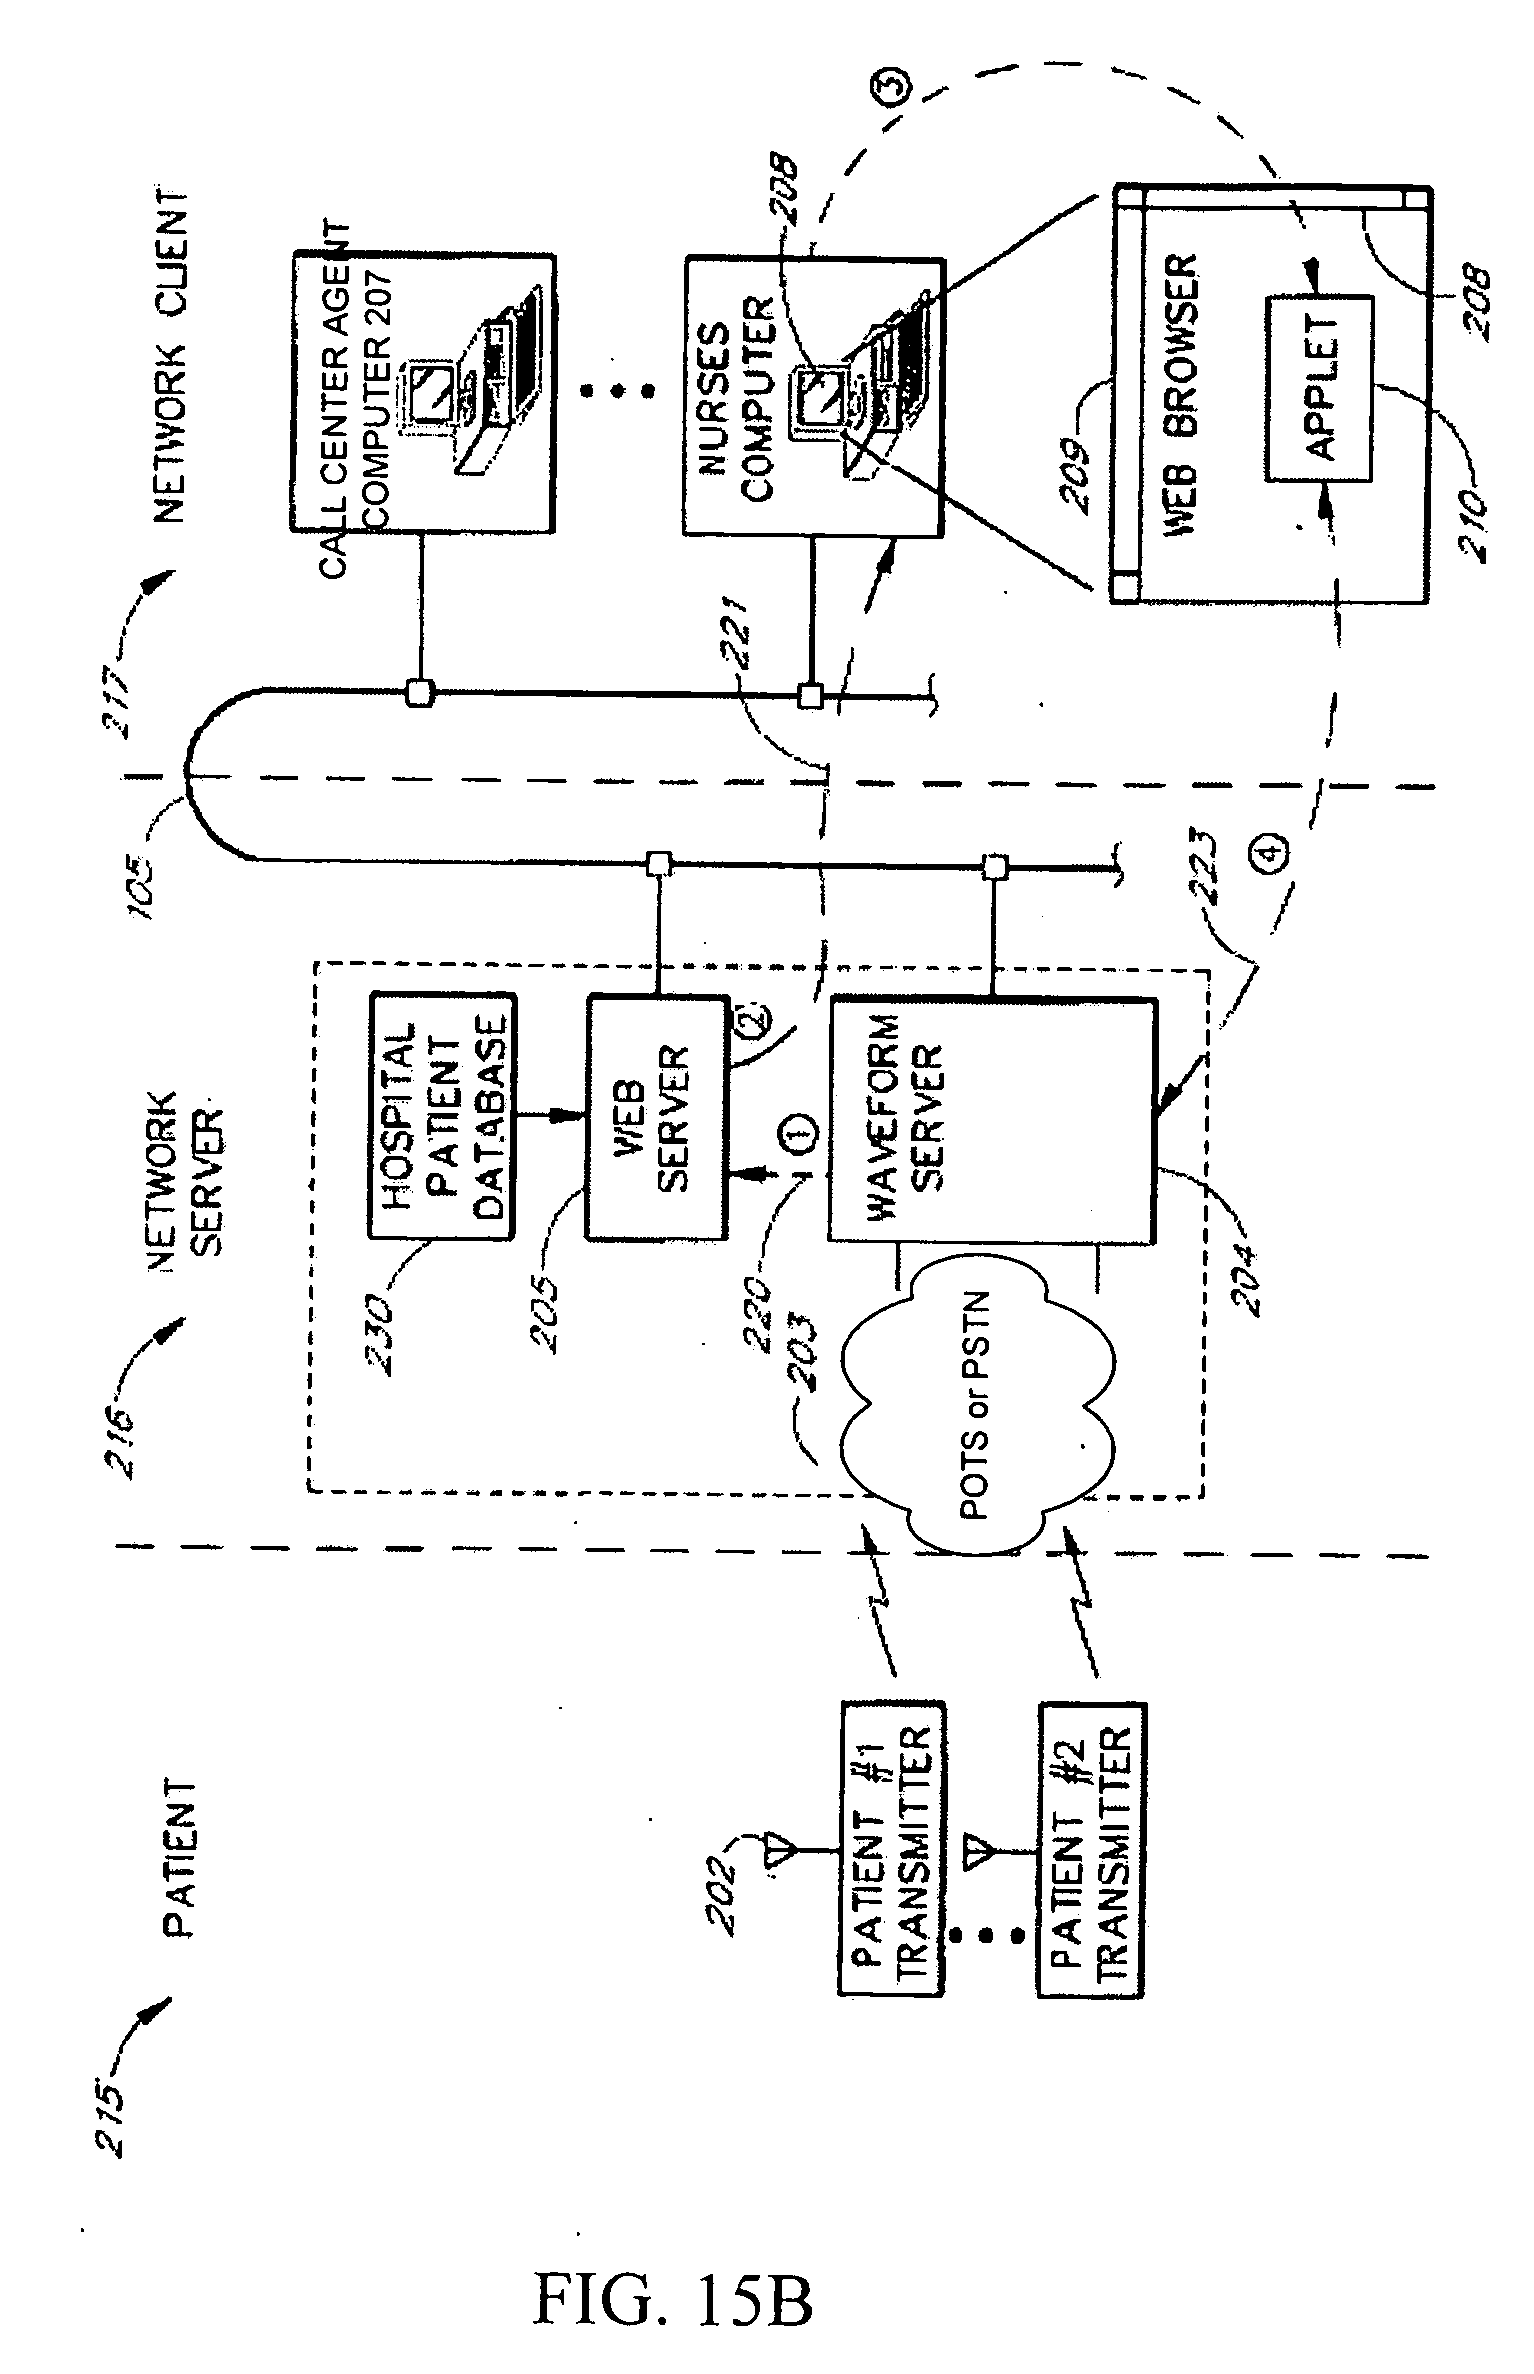 Patent Us 20080004904a1 Emg Block Diagram As Well Sensor Lifier Circuit Piezo On Capacitive 0 Petitions